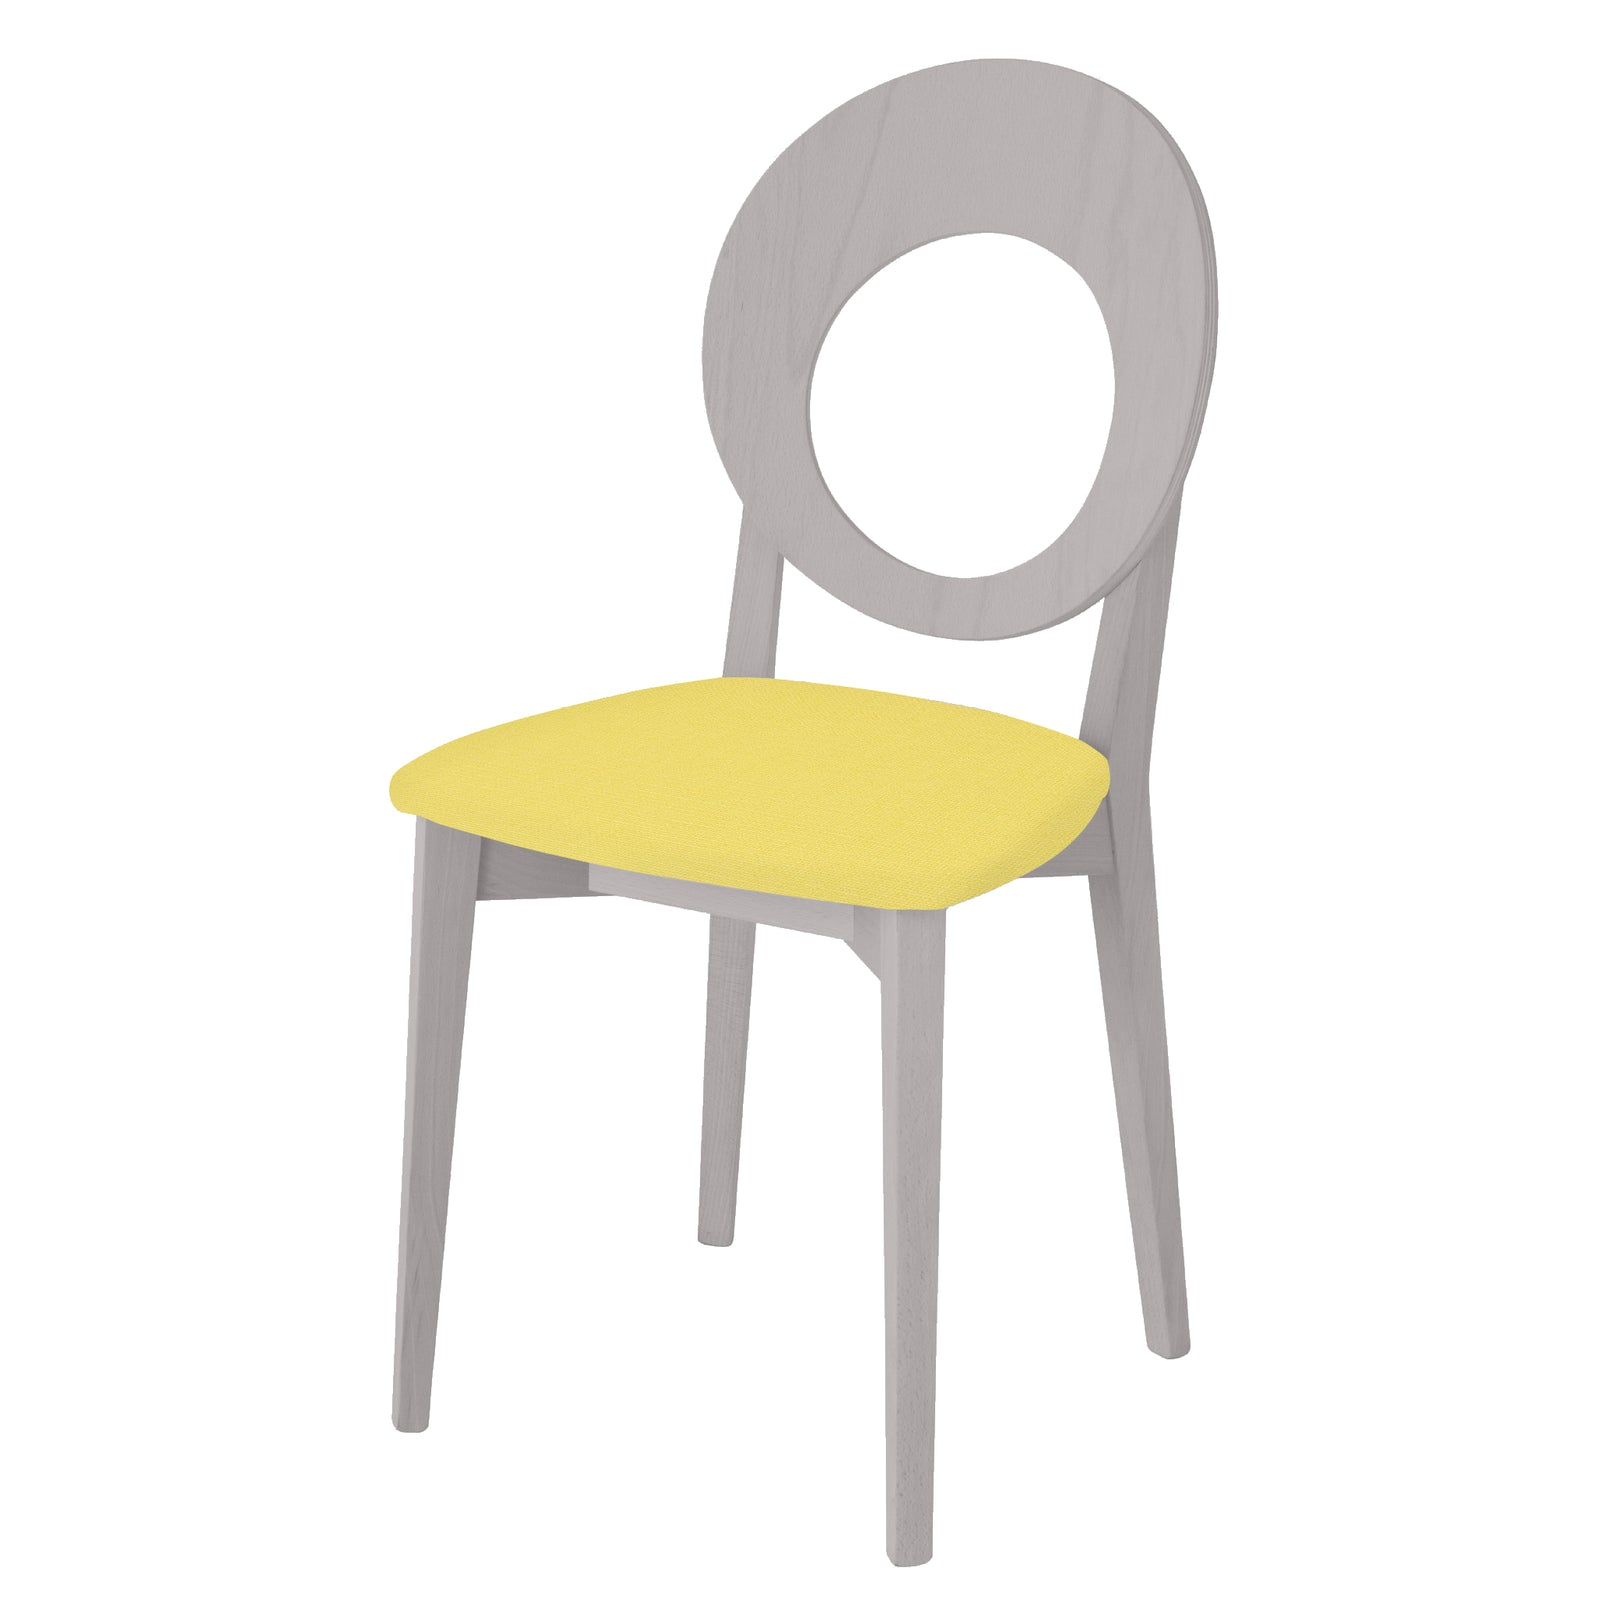 Magnificent Chloe Dining Chair Made To Order In Your Chosen Colourway Caraccident5 Cool Chair Designs And Ideas Caraccident5Info